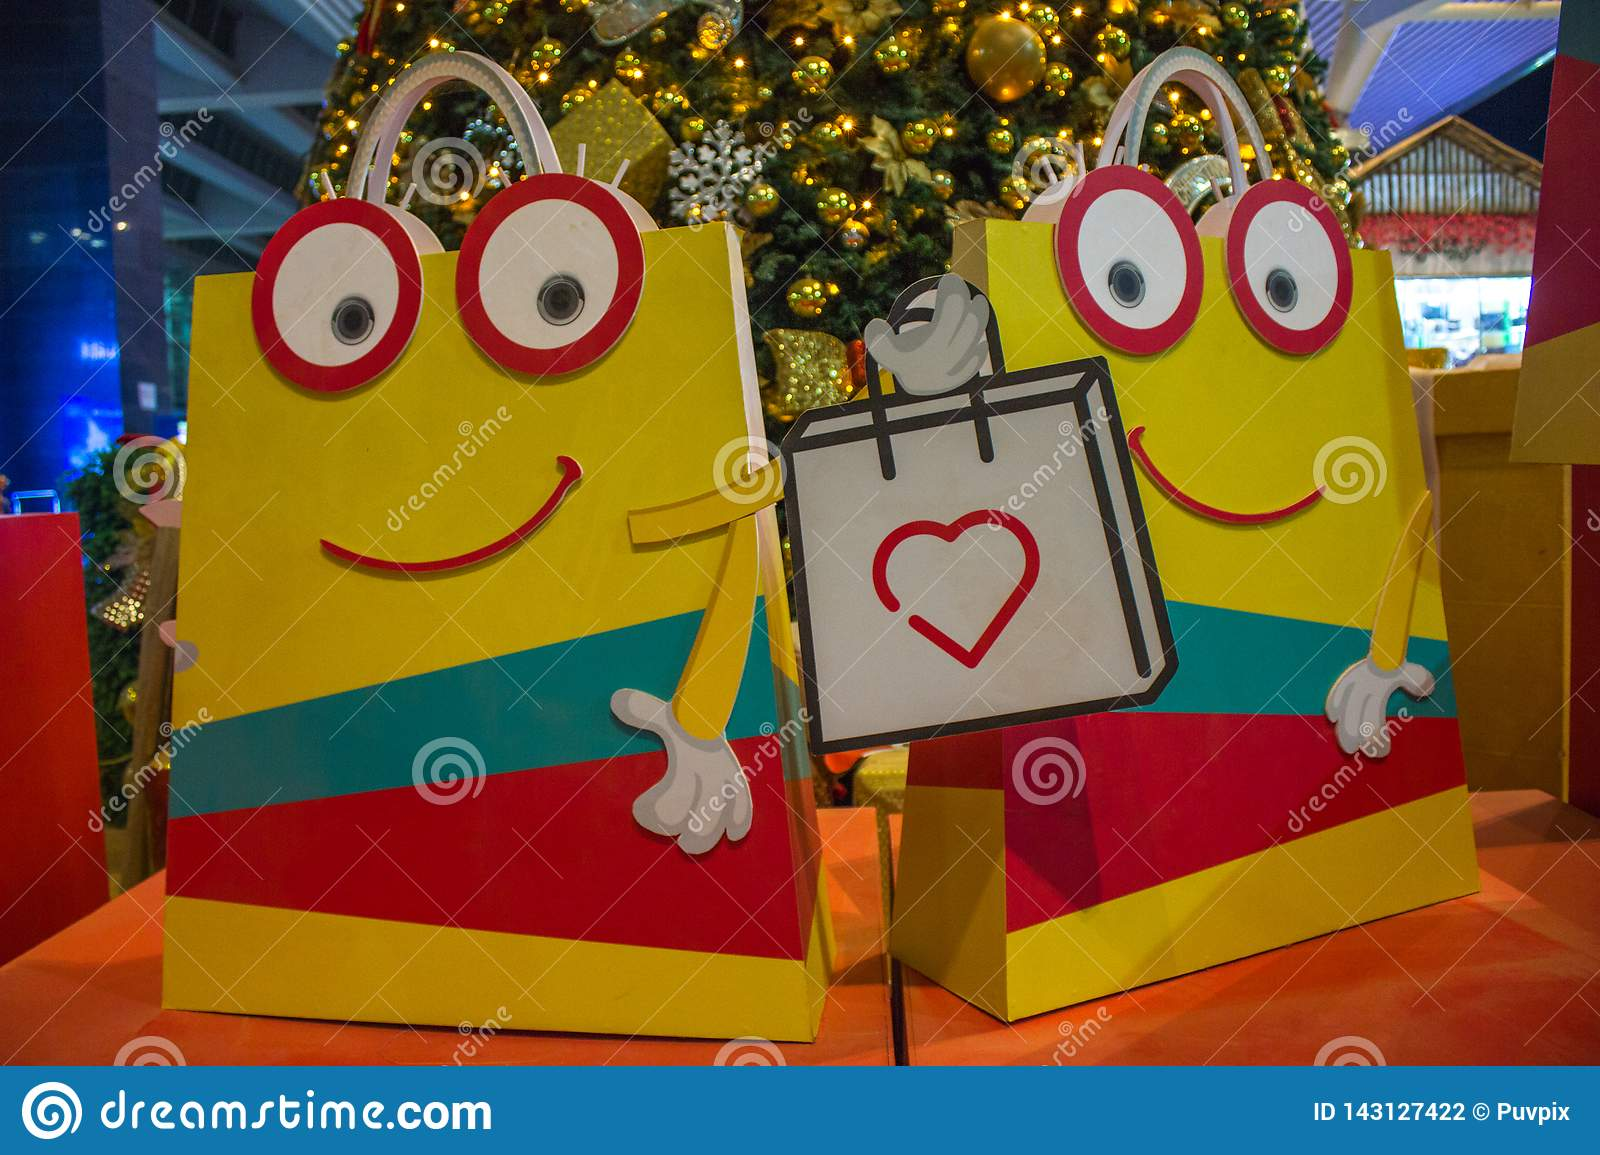 Smiley animated shopping bags with christmas tree in the background.